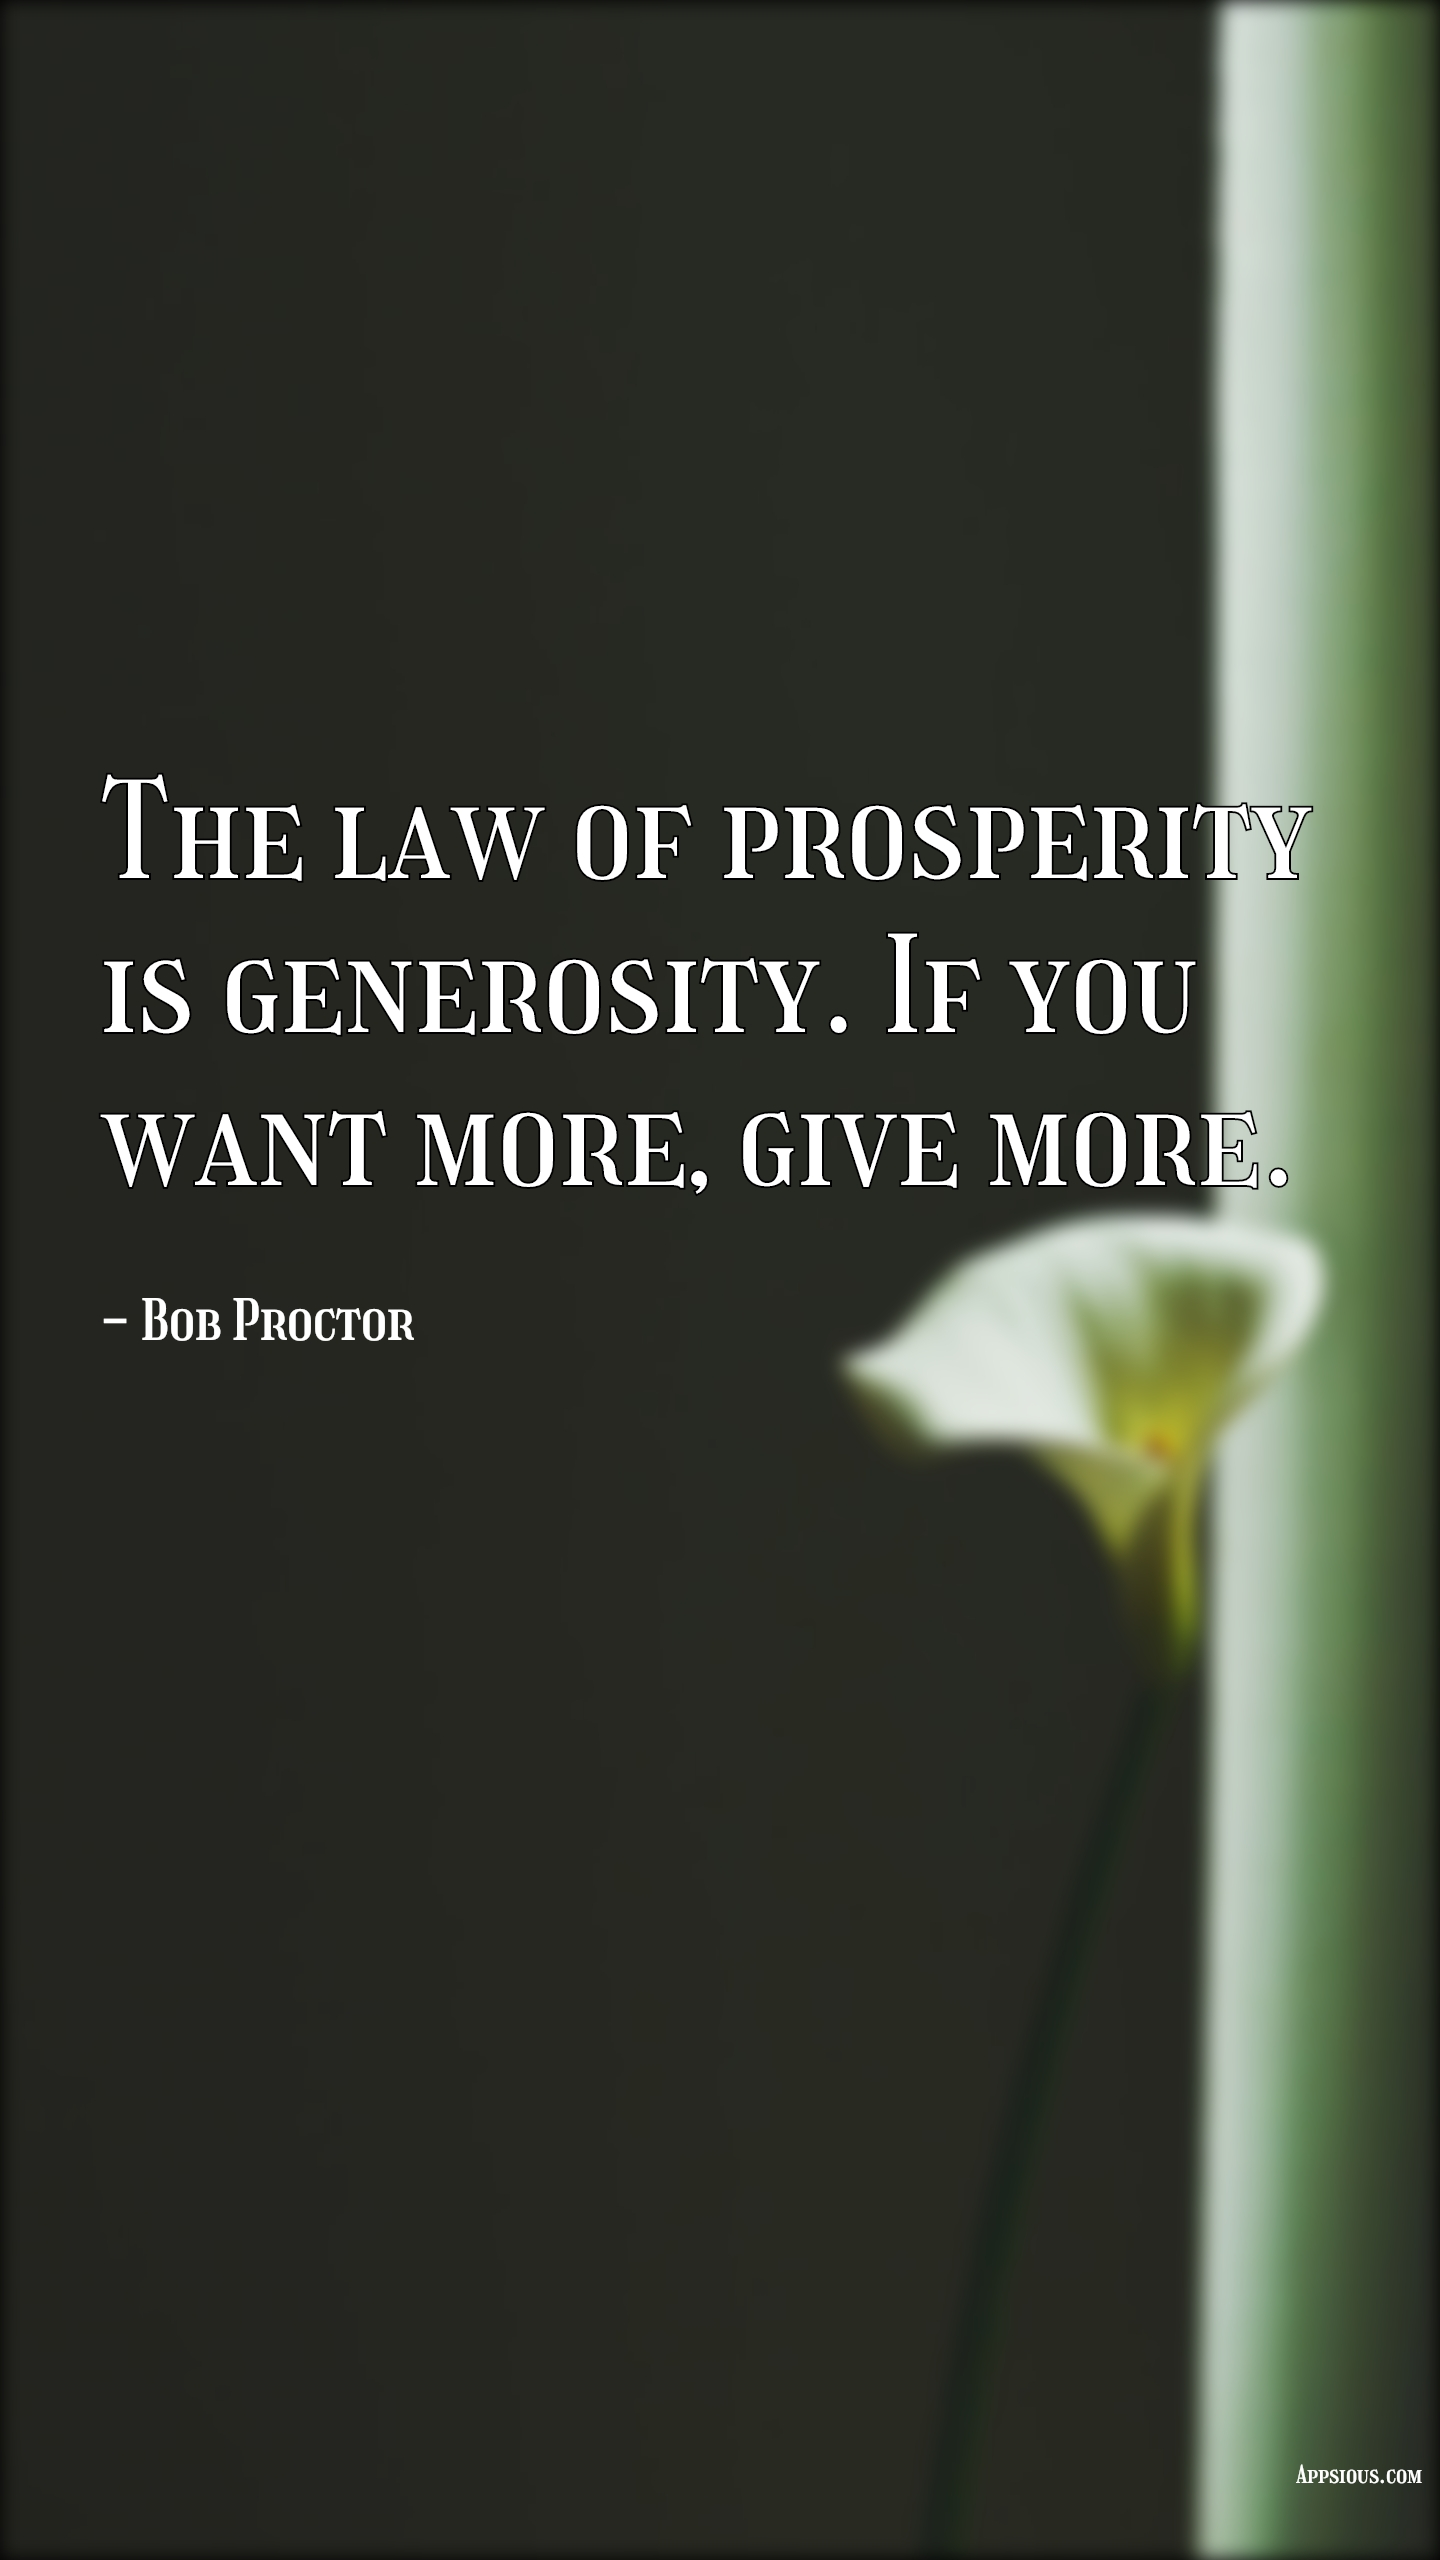 The law of prosperity is generosity. If you want more, give more.